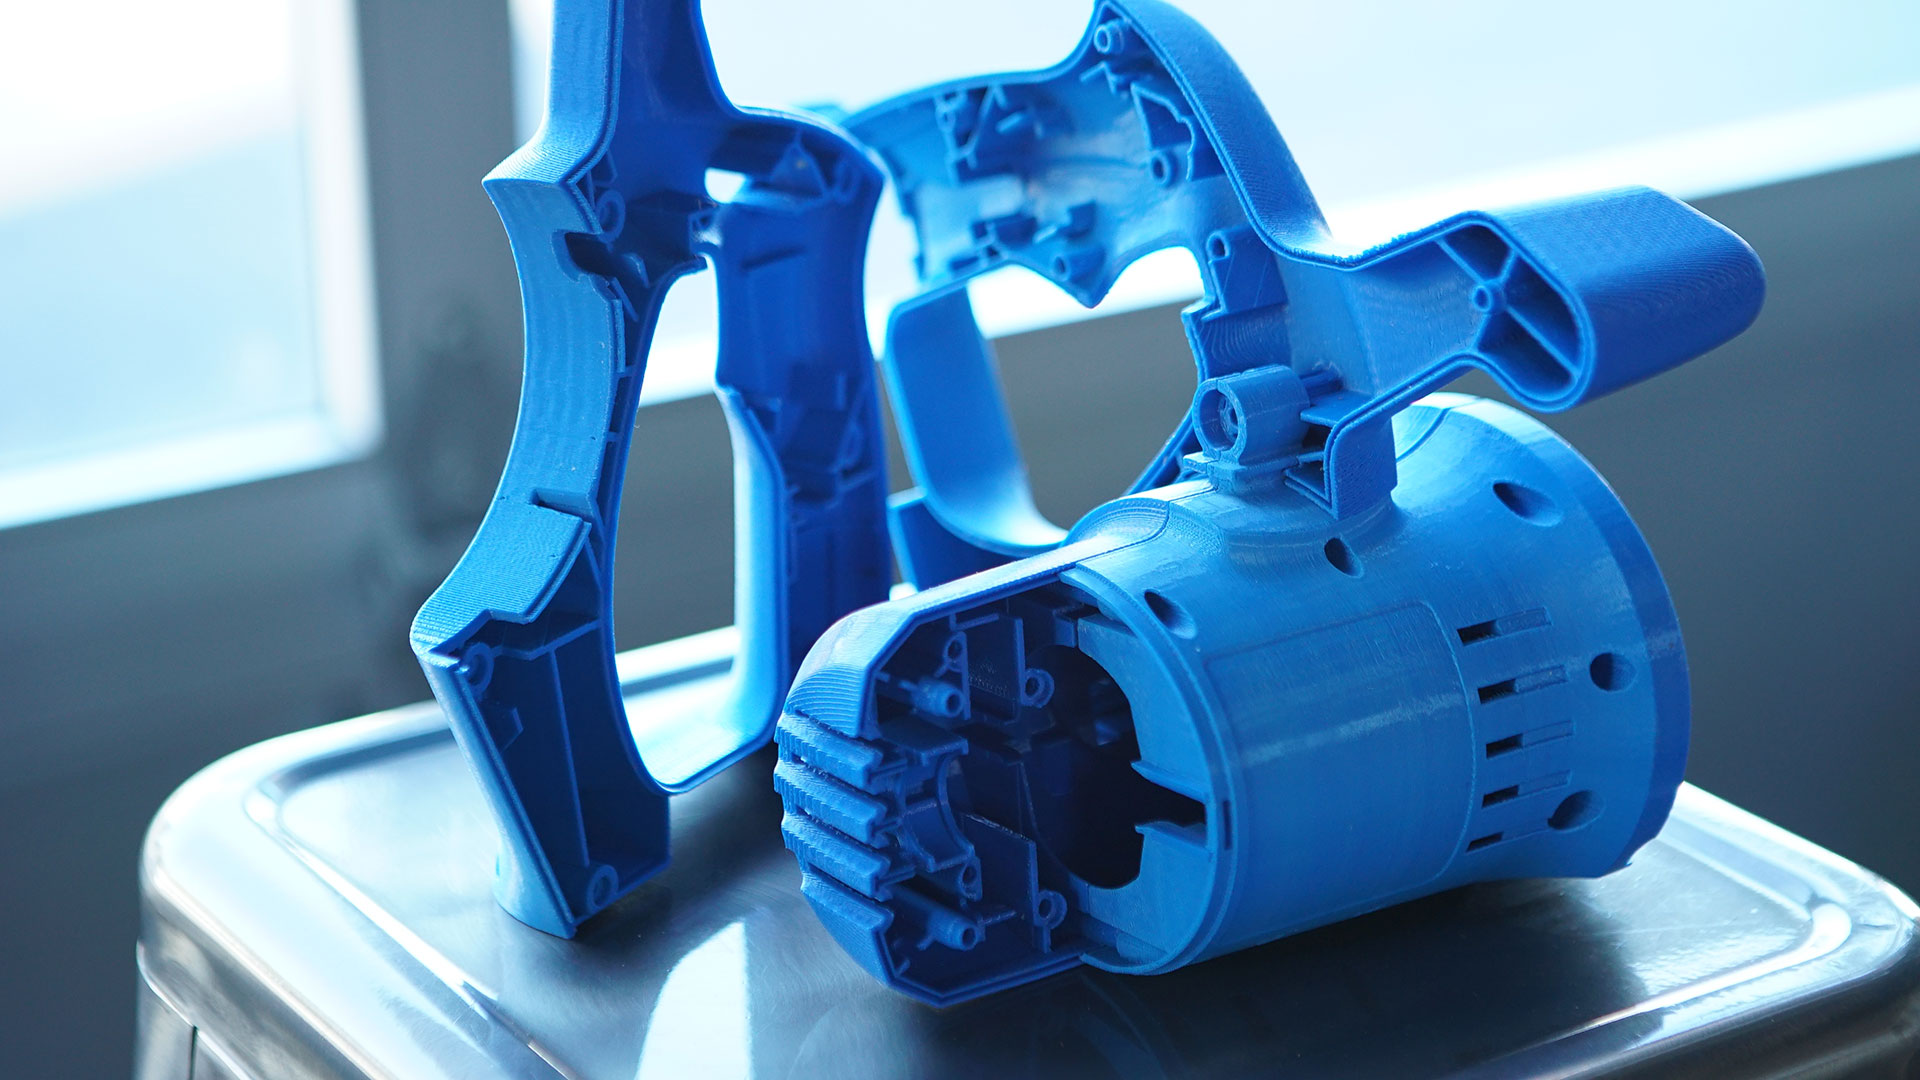 3D Printing for Small Run Manufacturing